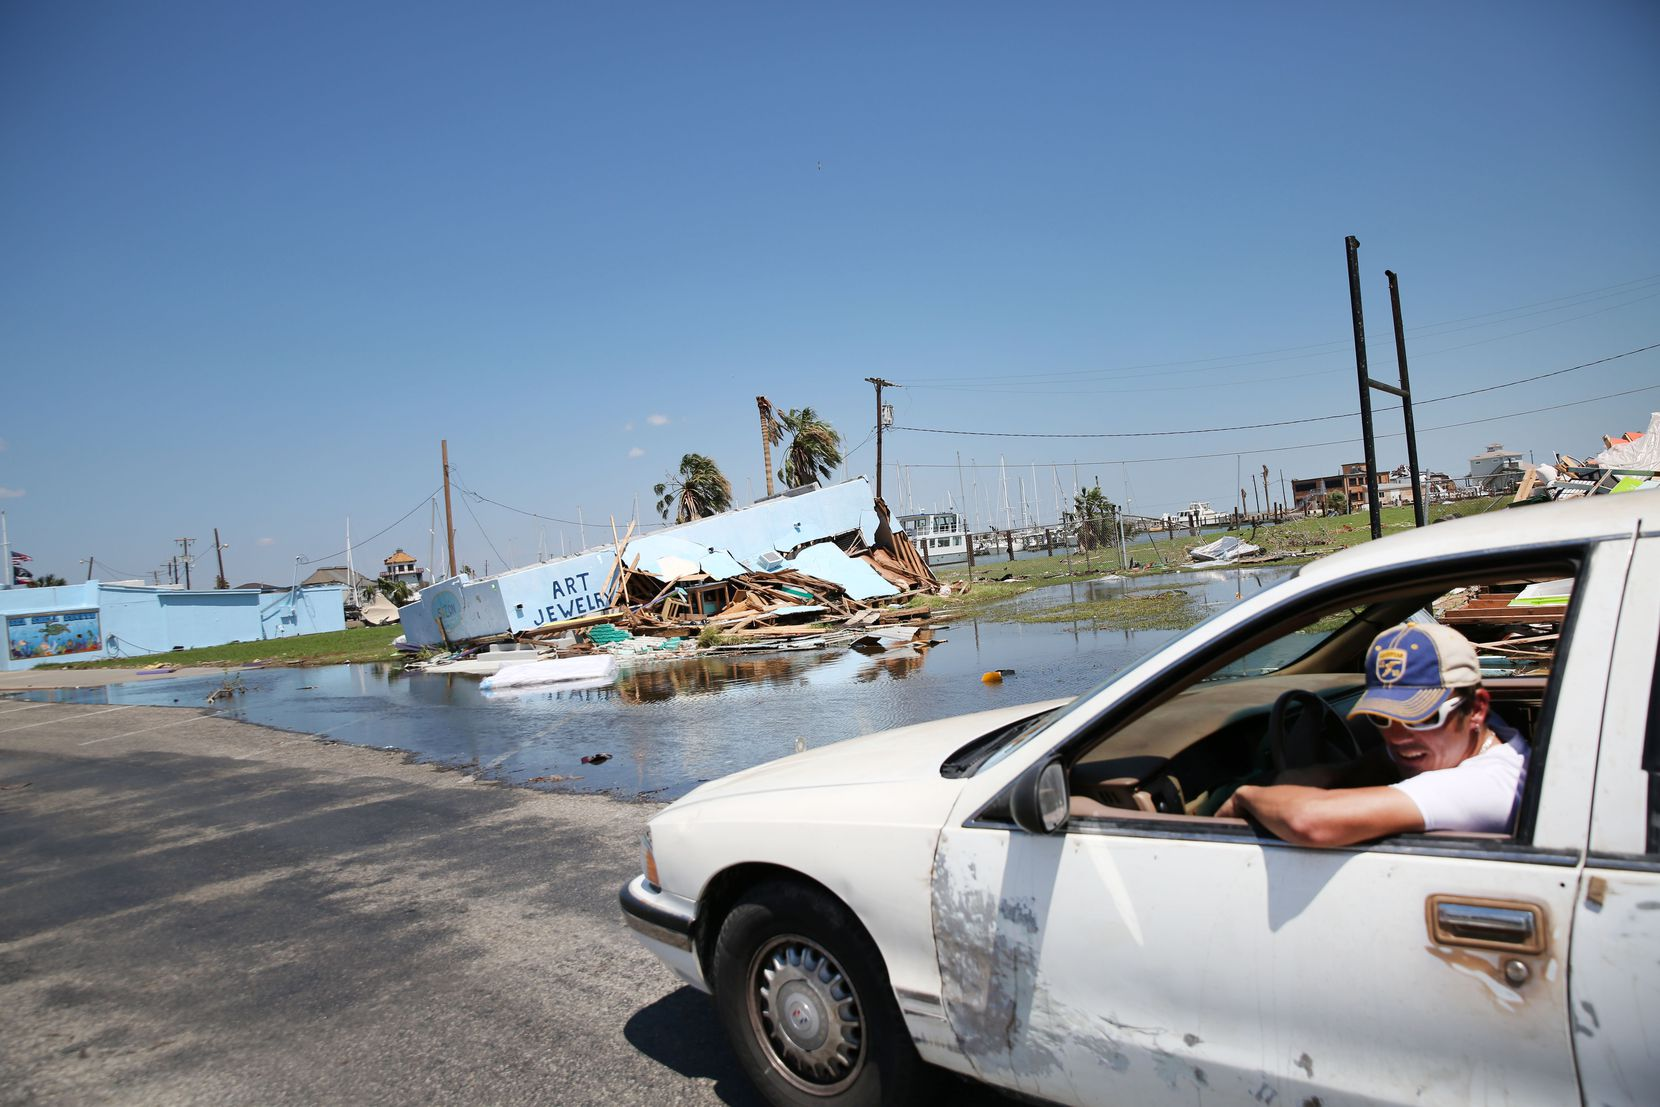 A man drives down South Austin Street in downtown Rockport, Texas on Wednesday, Aug. 30, 2017. The coastal region suffered severe damage after Hurricane Harvey hit the area on Aug. 26, 2017.